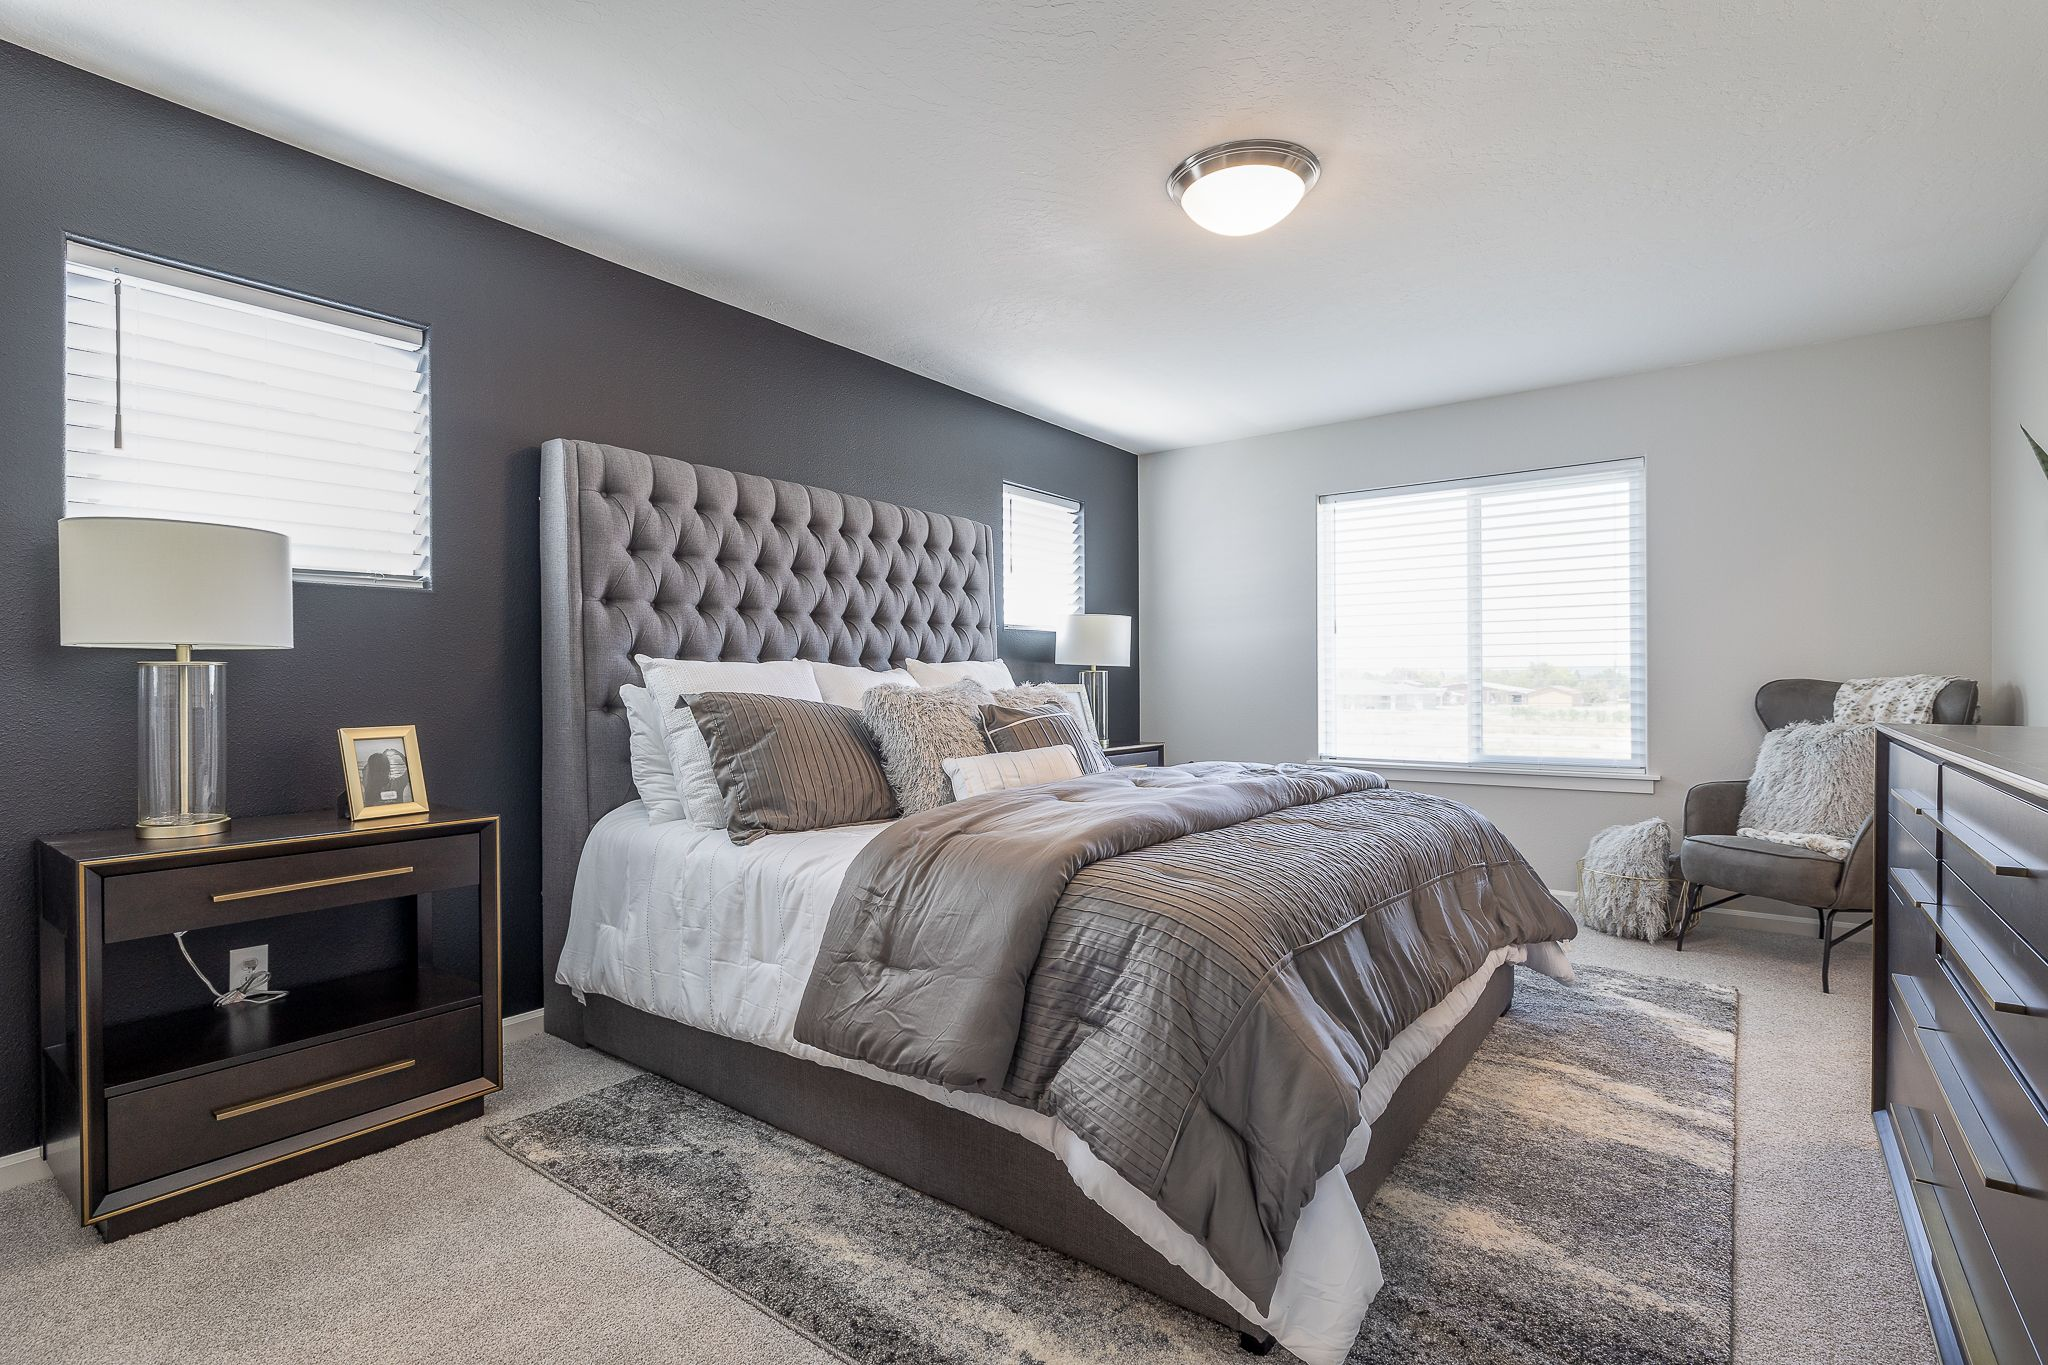 Bedroom featured in the Alderwood By New Tradition Homes in Yakima, WA